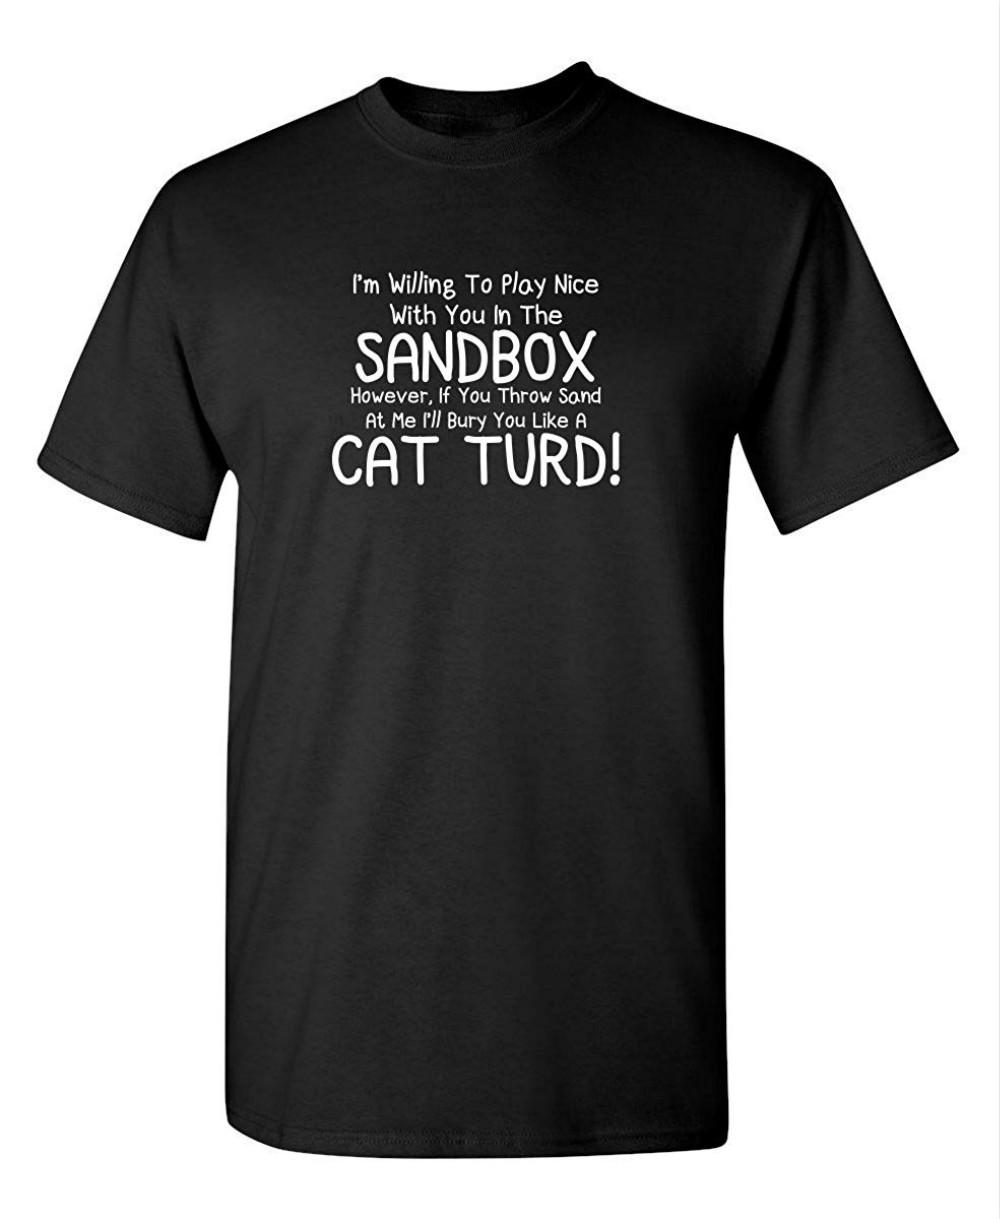 271f55eee Play Nice Cat Turd Novelty Graphic Sarcastic Funny T Shirt Tee Shirt ...